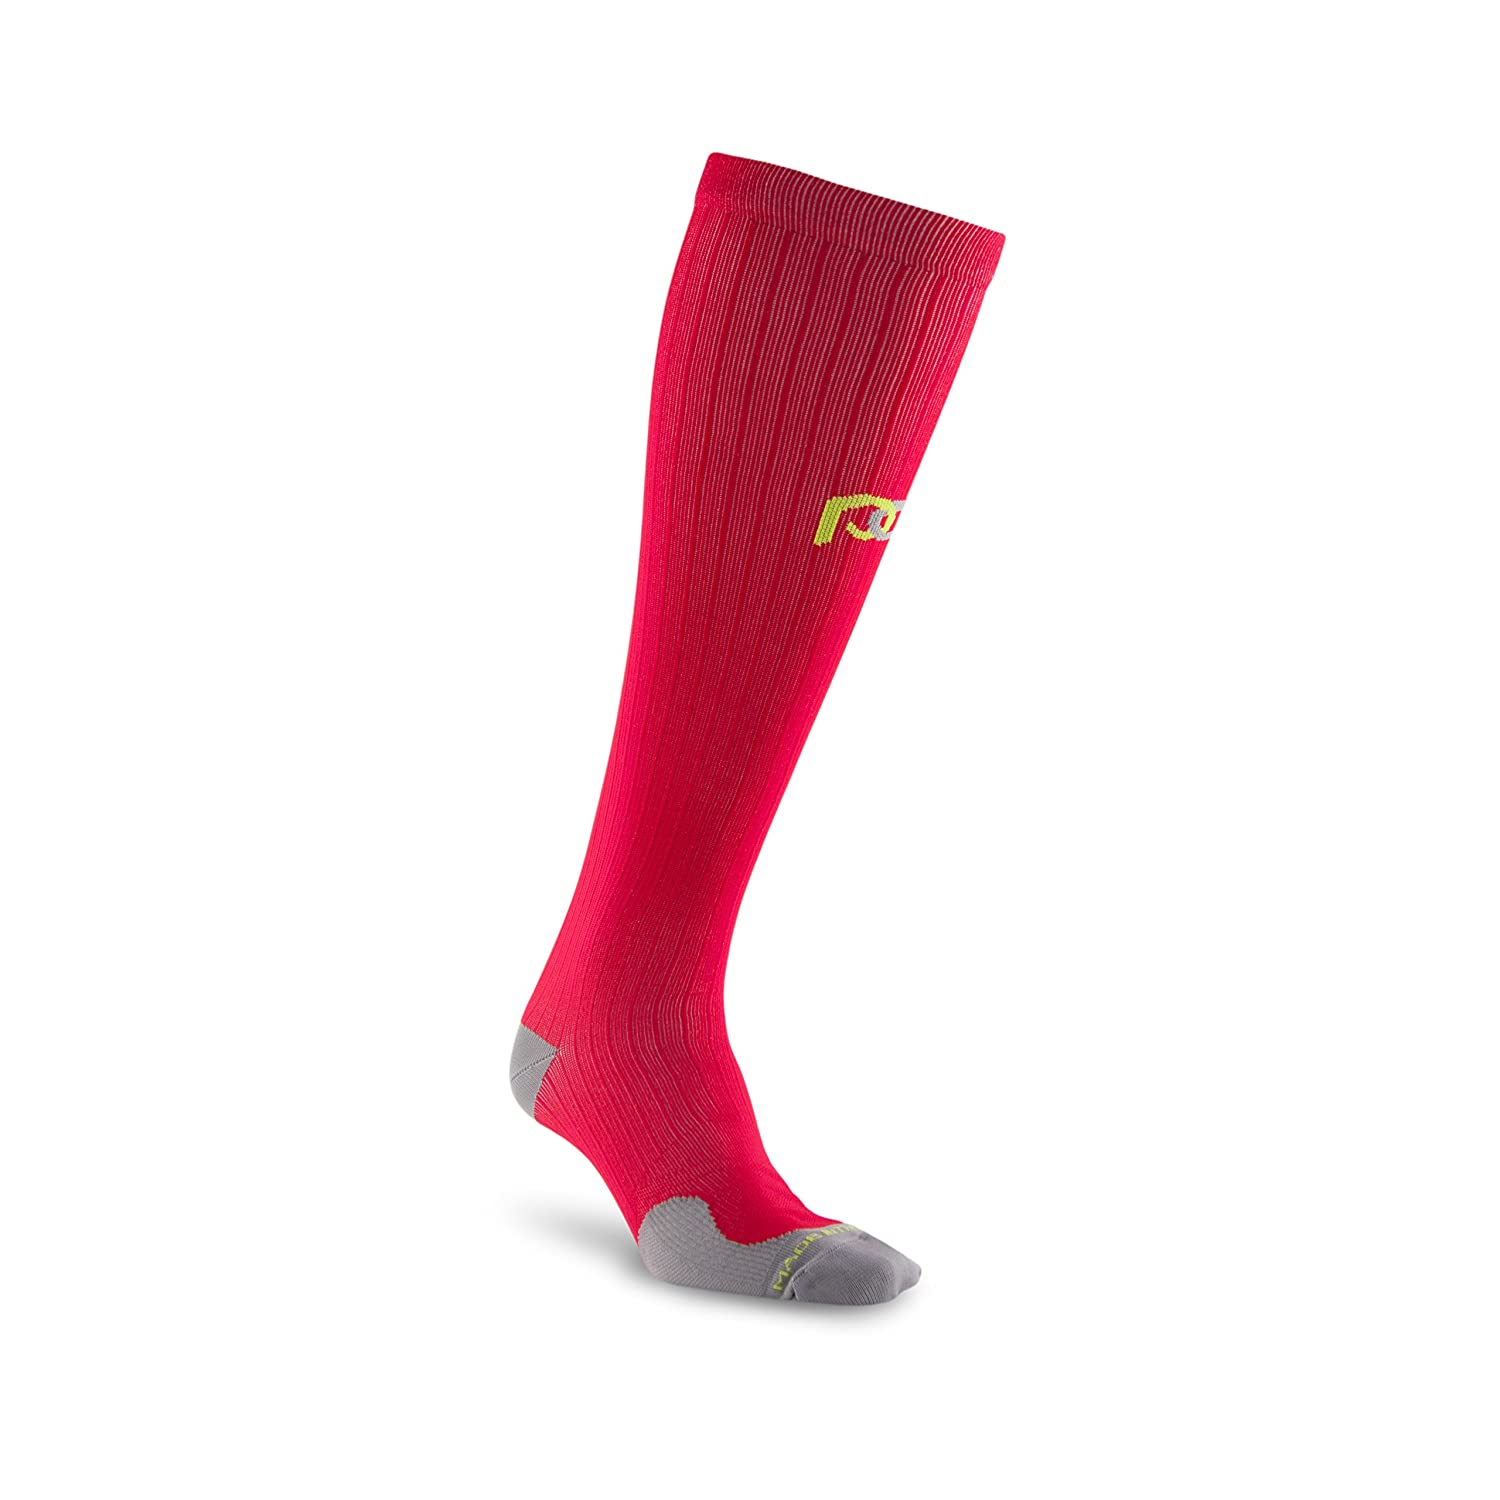 Pro:Compression Marathon sock